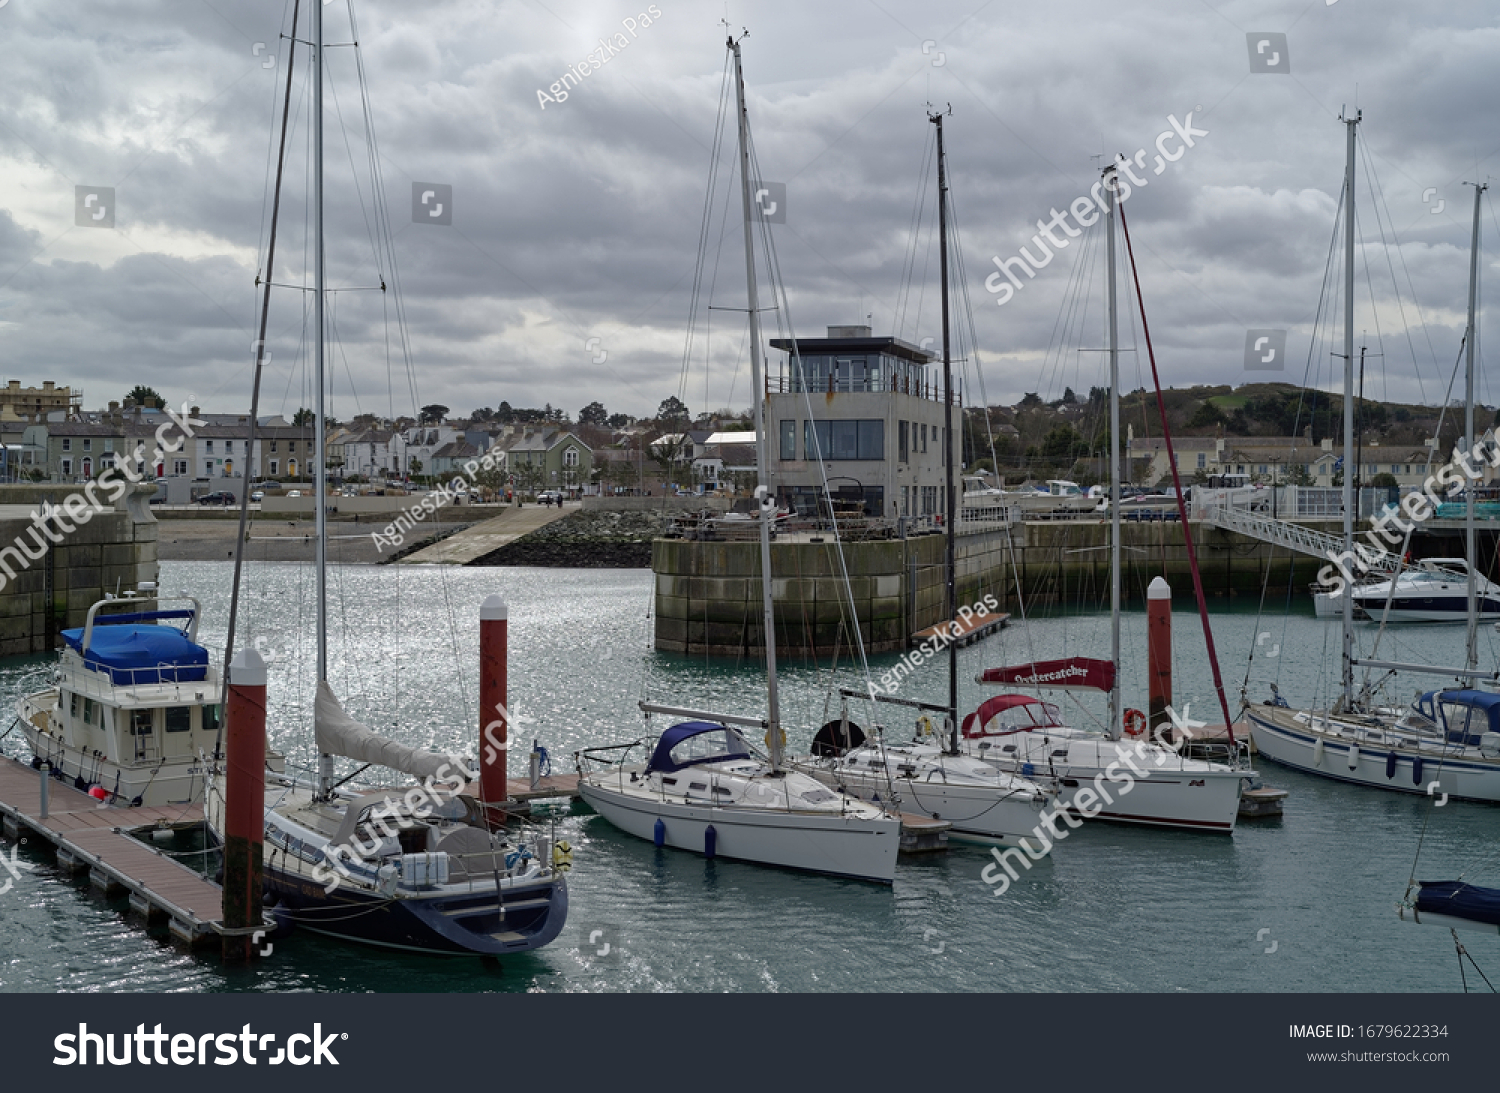 GREYSTONES, CO. WICKLOW, IRELAND - MARCH 16, 2020: Yachts docking at the Greystones Harbour Marina. The Marina and Harbour Master's Office building at the background. Cloudy day.